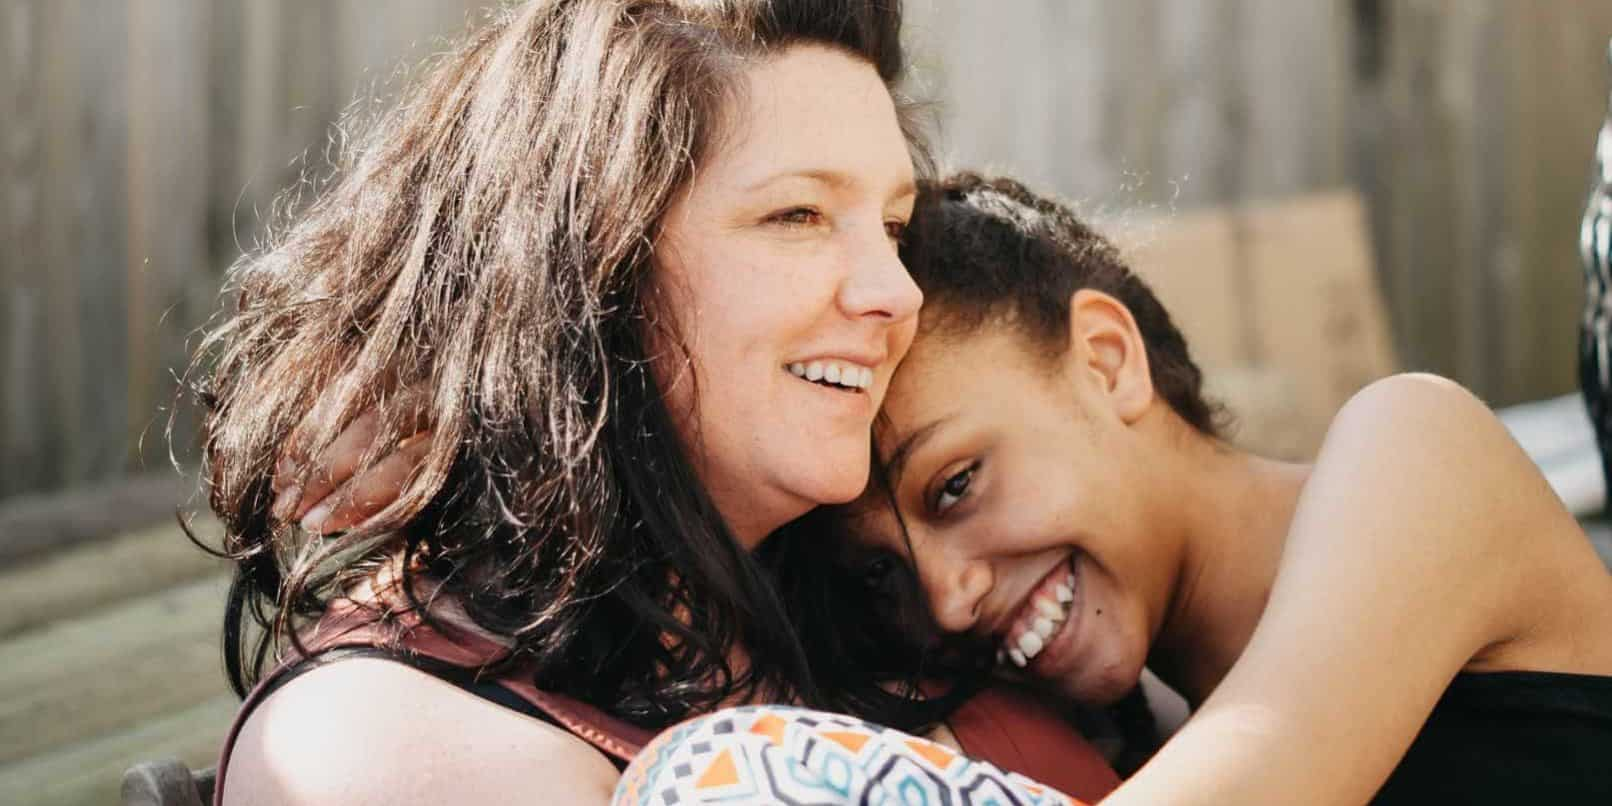 body image from moms to daughters